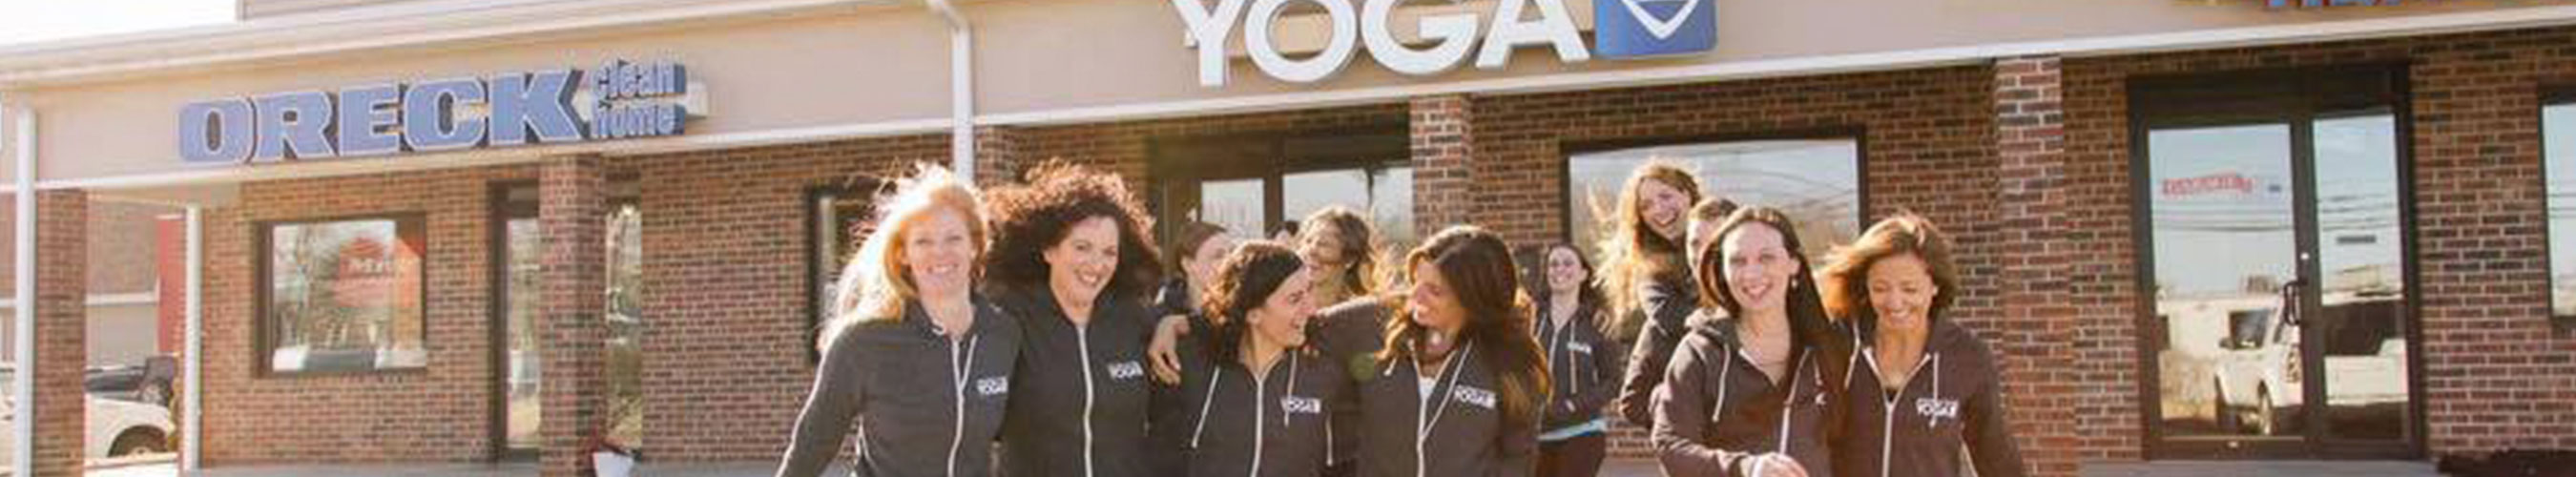 WELCOME TO YOUR YOGA HOME